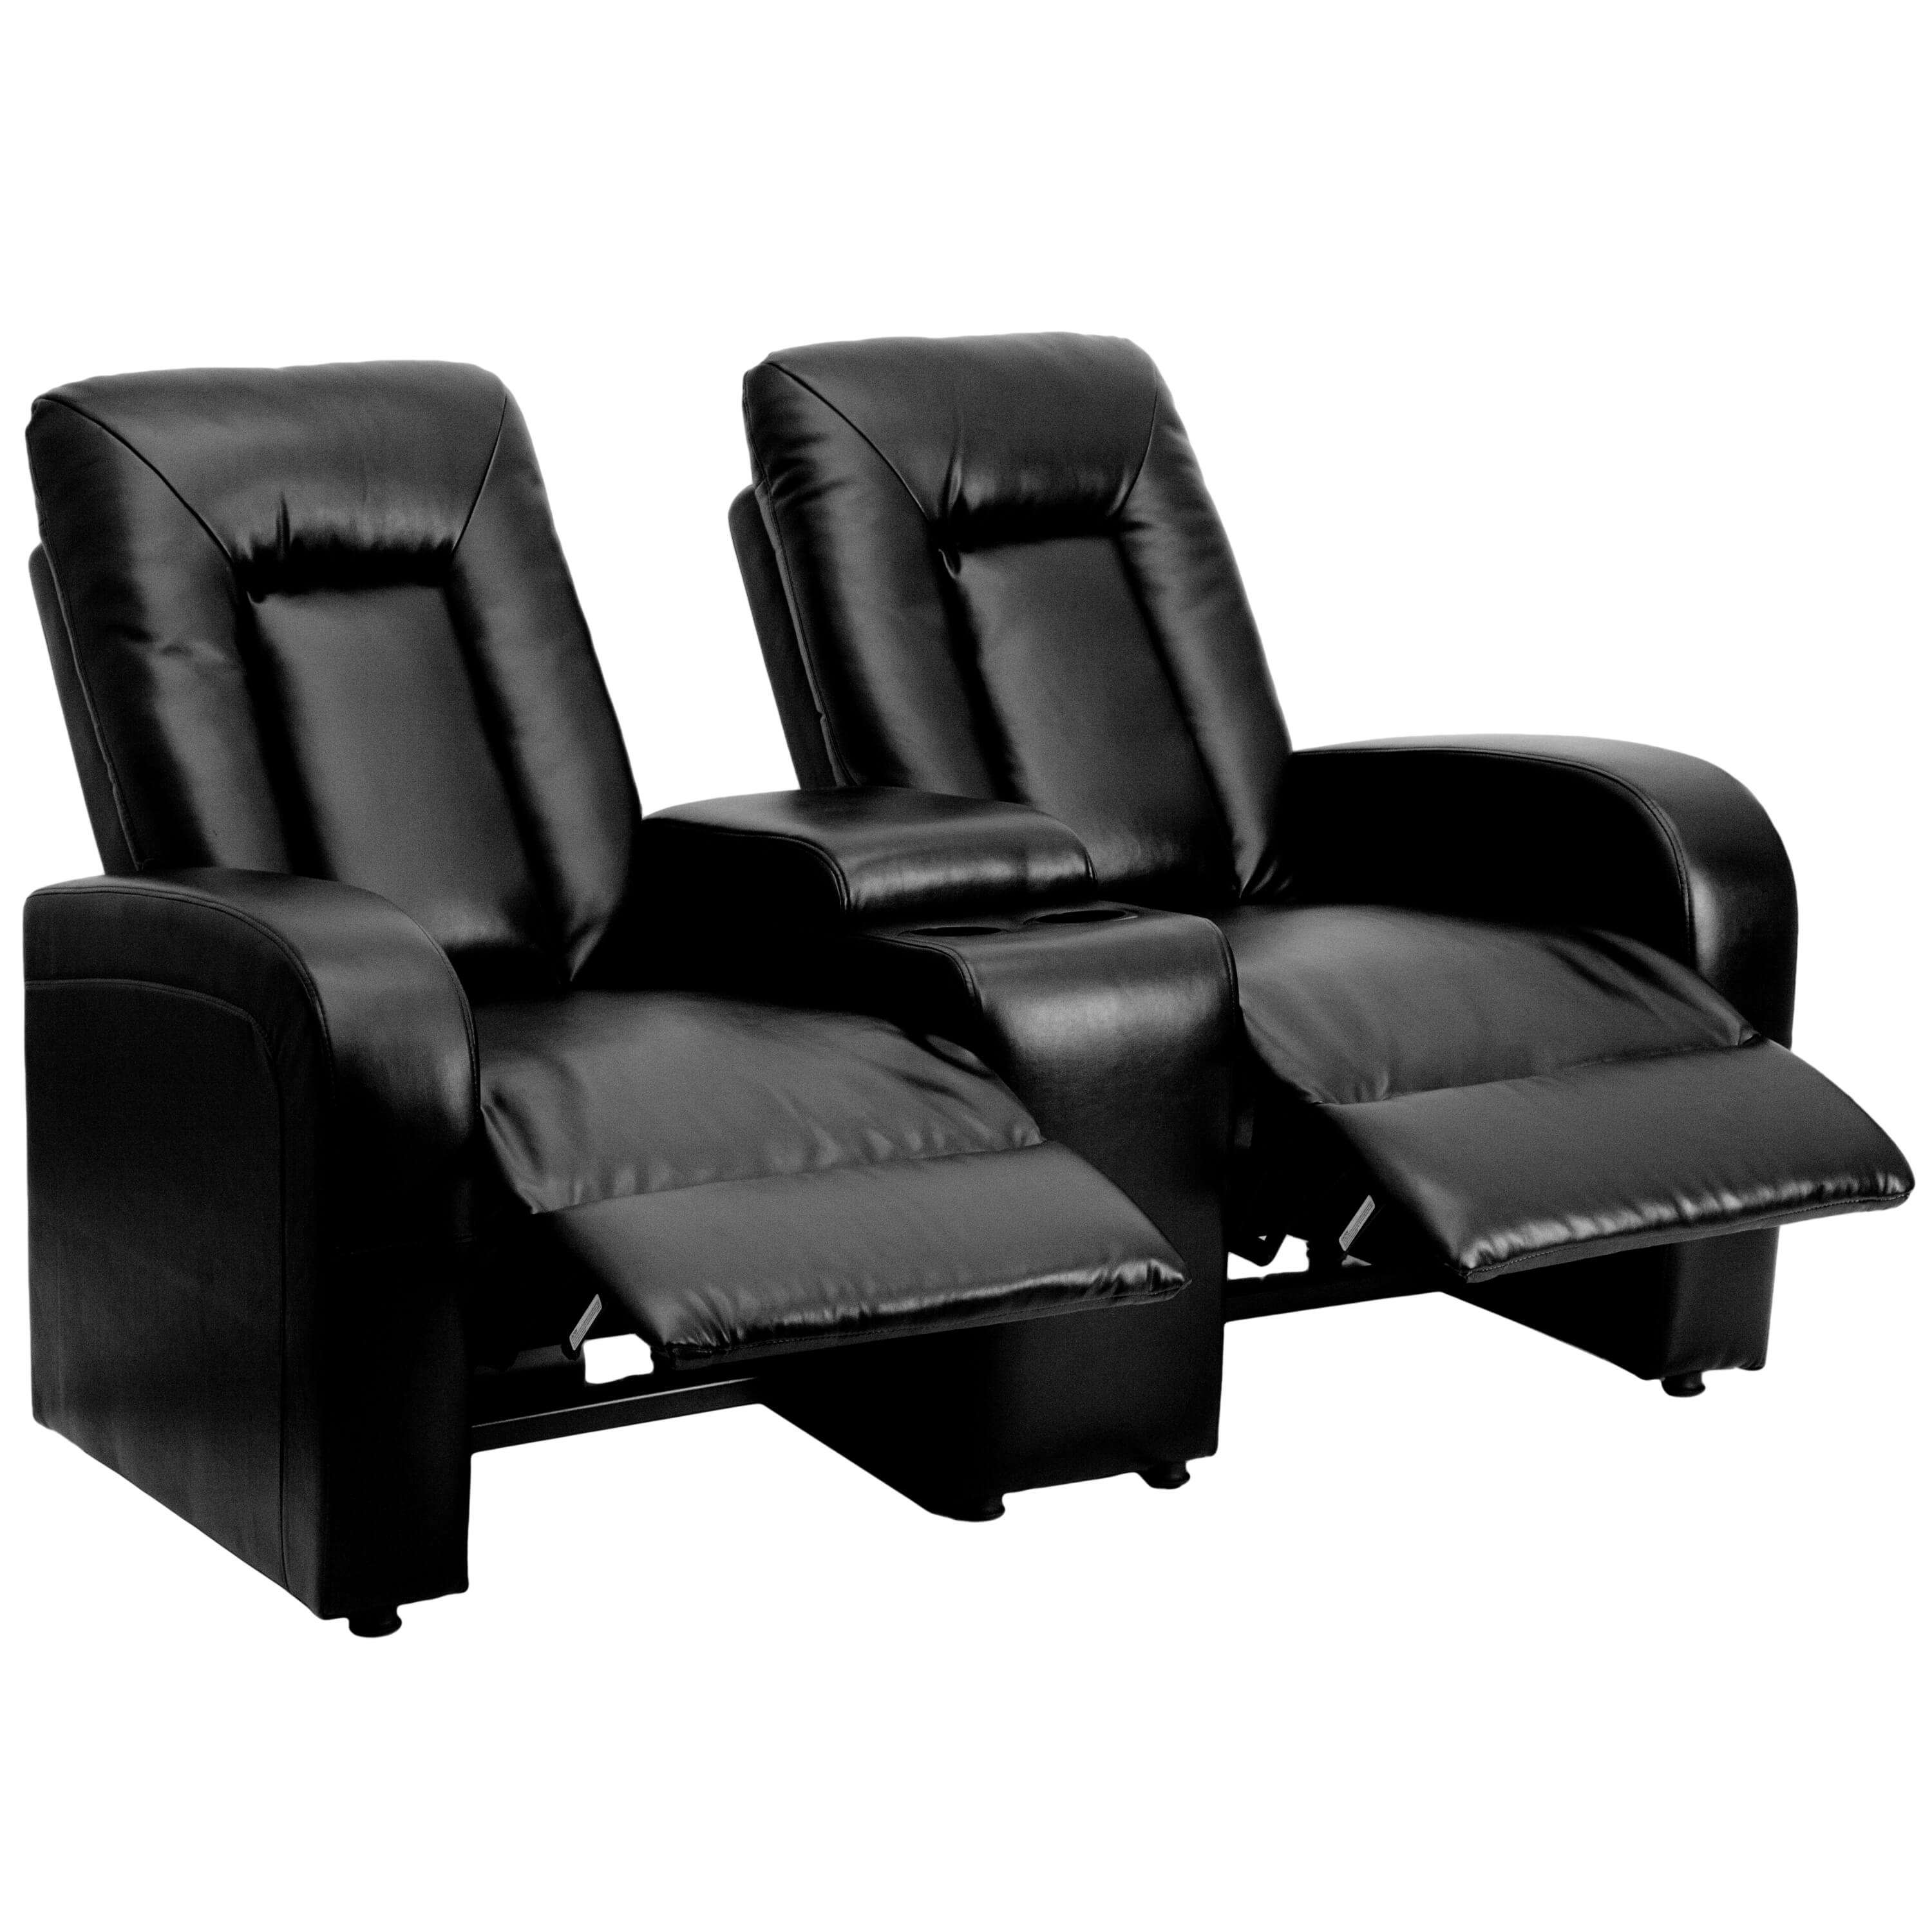 Home theater recliners CUB BT 70259 2 BK GG FLA